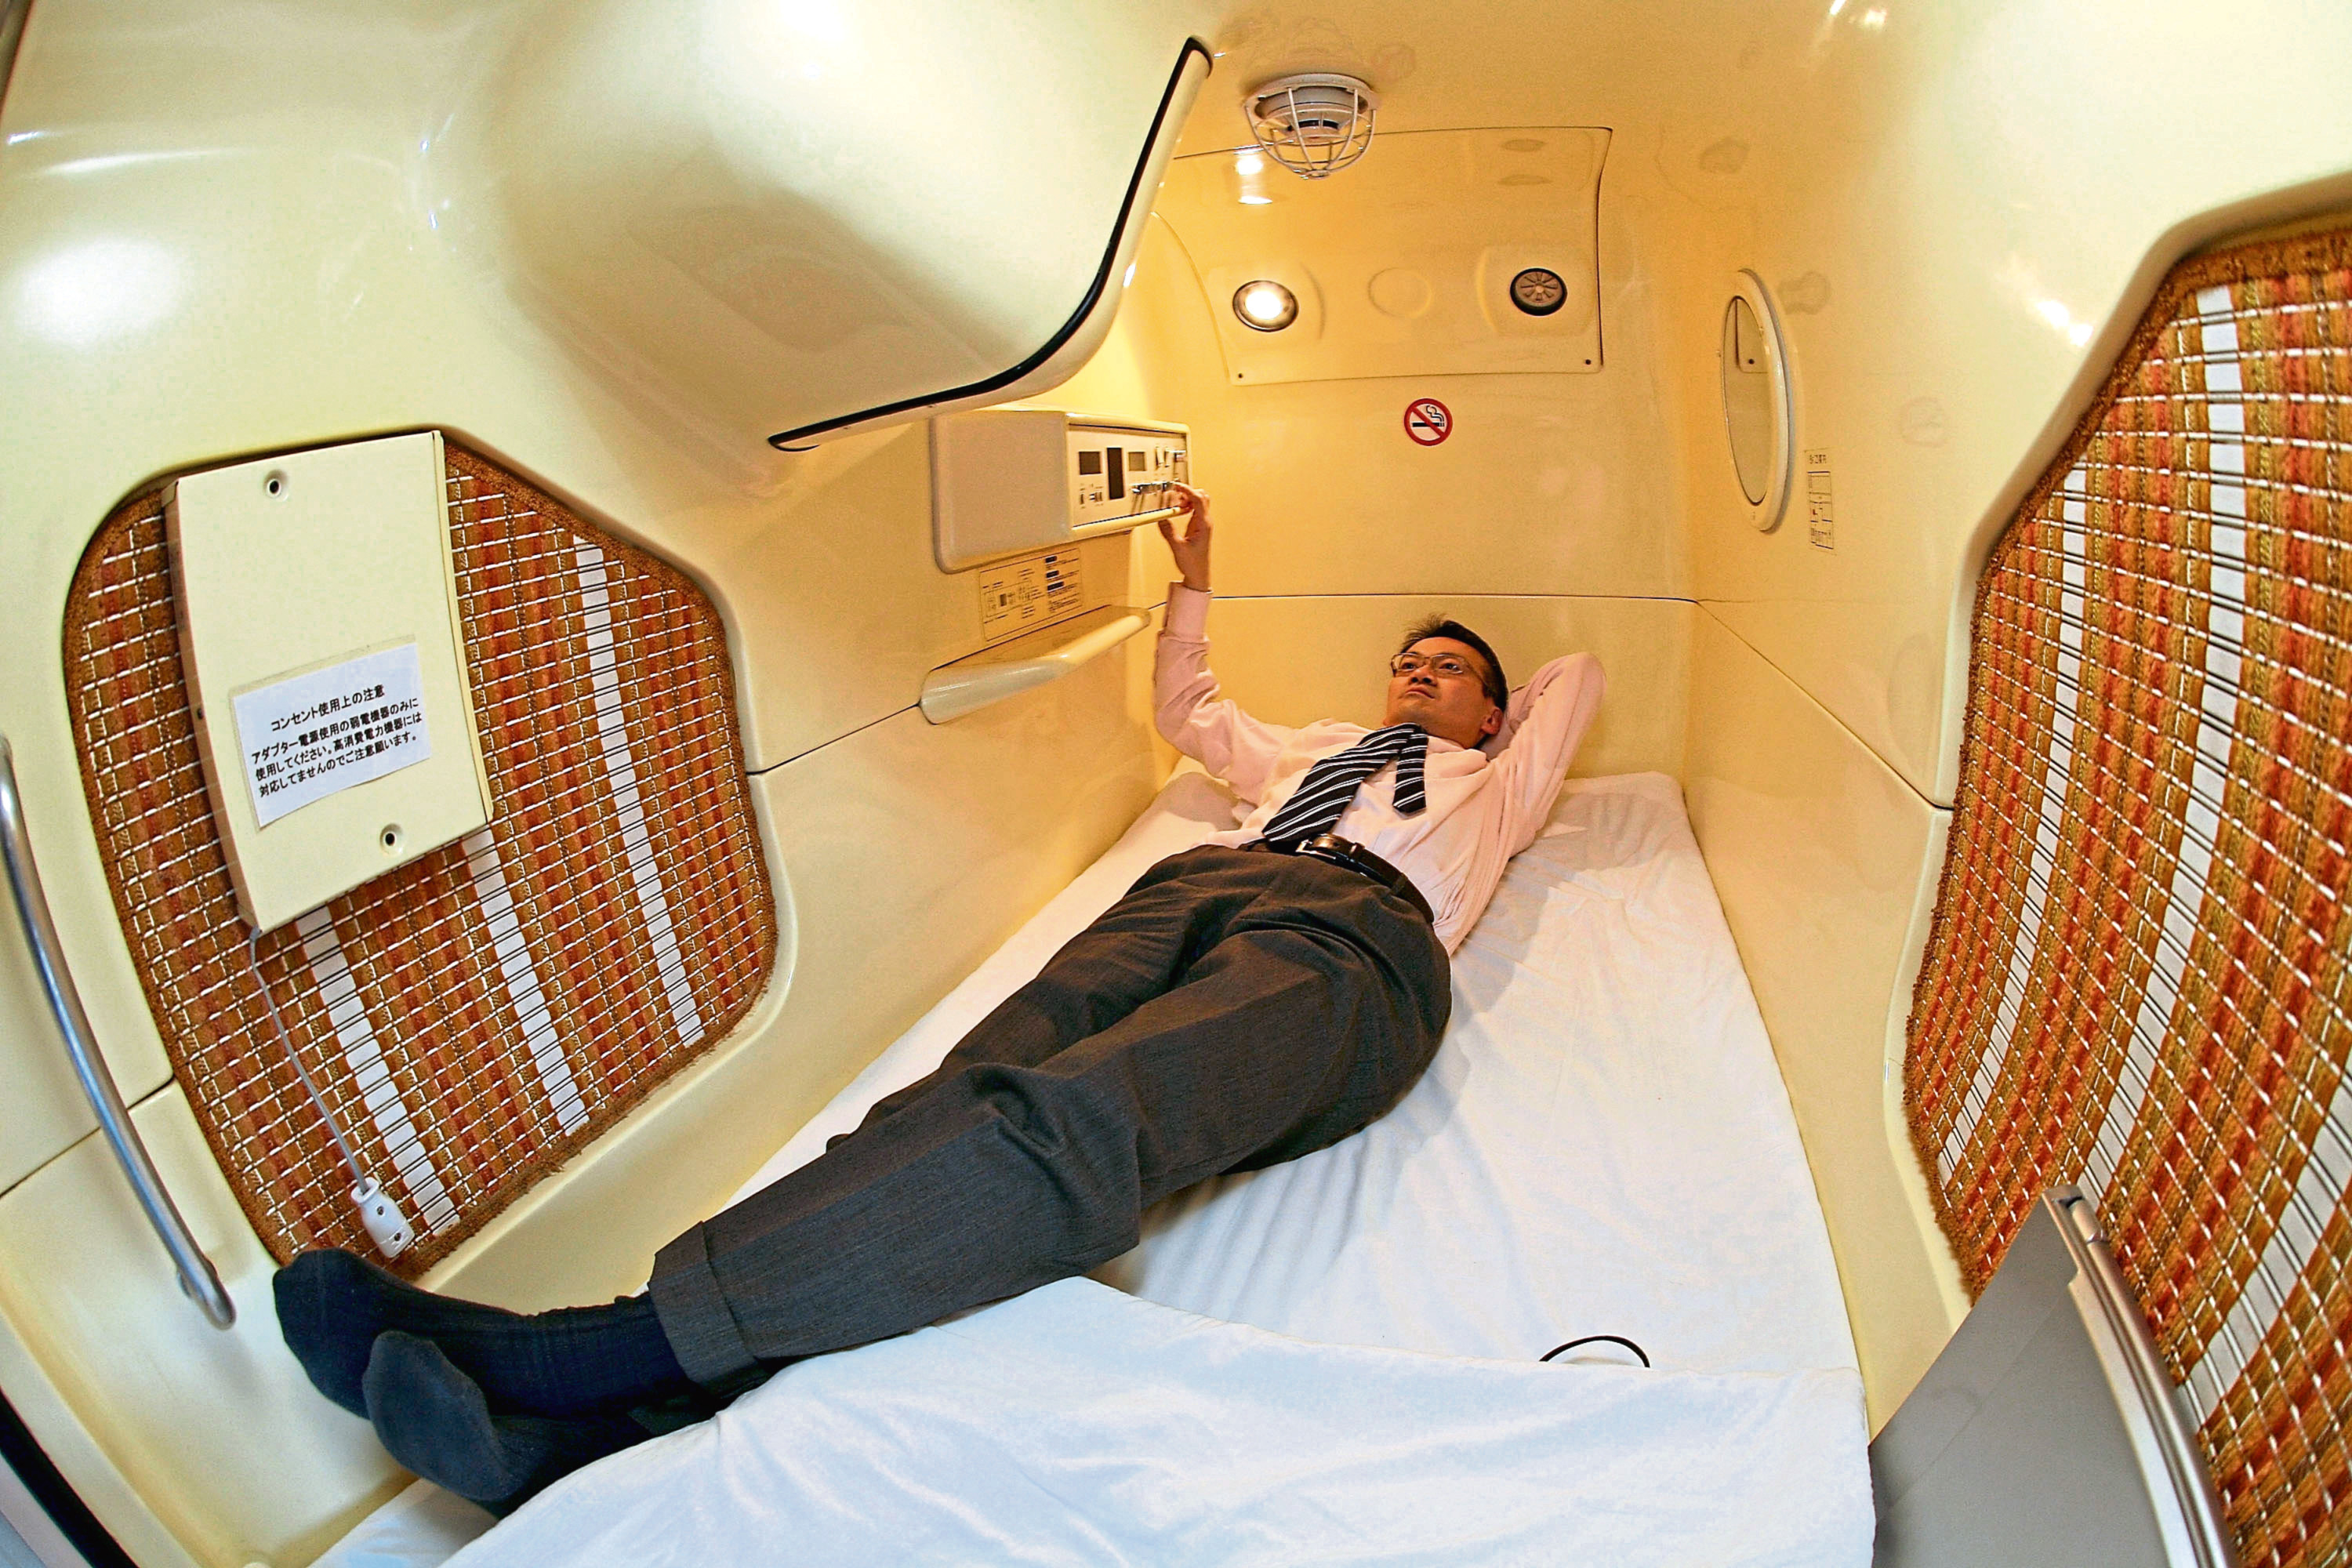 "TOKYO - FEBRUARY 6: A visitor relaxes in a sleeping module at Tokyo's tube Hotel ""Capsule Inn Akihabara"" on February 6, 2007 in Tokyo, Japan. The two-square-meter sleep modules are equipped with a TV, Radio and Wireless LAN and are priced at 3500 yen per night. Uptil recently it has mainly been the office workers who stay at such tube hotels when they cannot go home, but recently they are attracting many foreign travellers due to their Japanese style. (Photo by Koichi Kamoshida/Getty Images)"